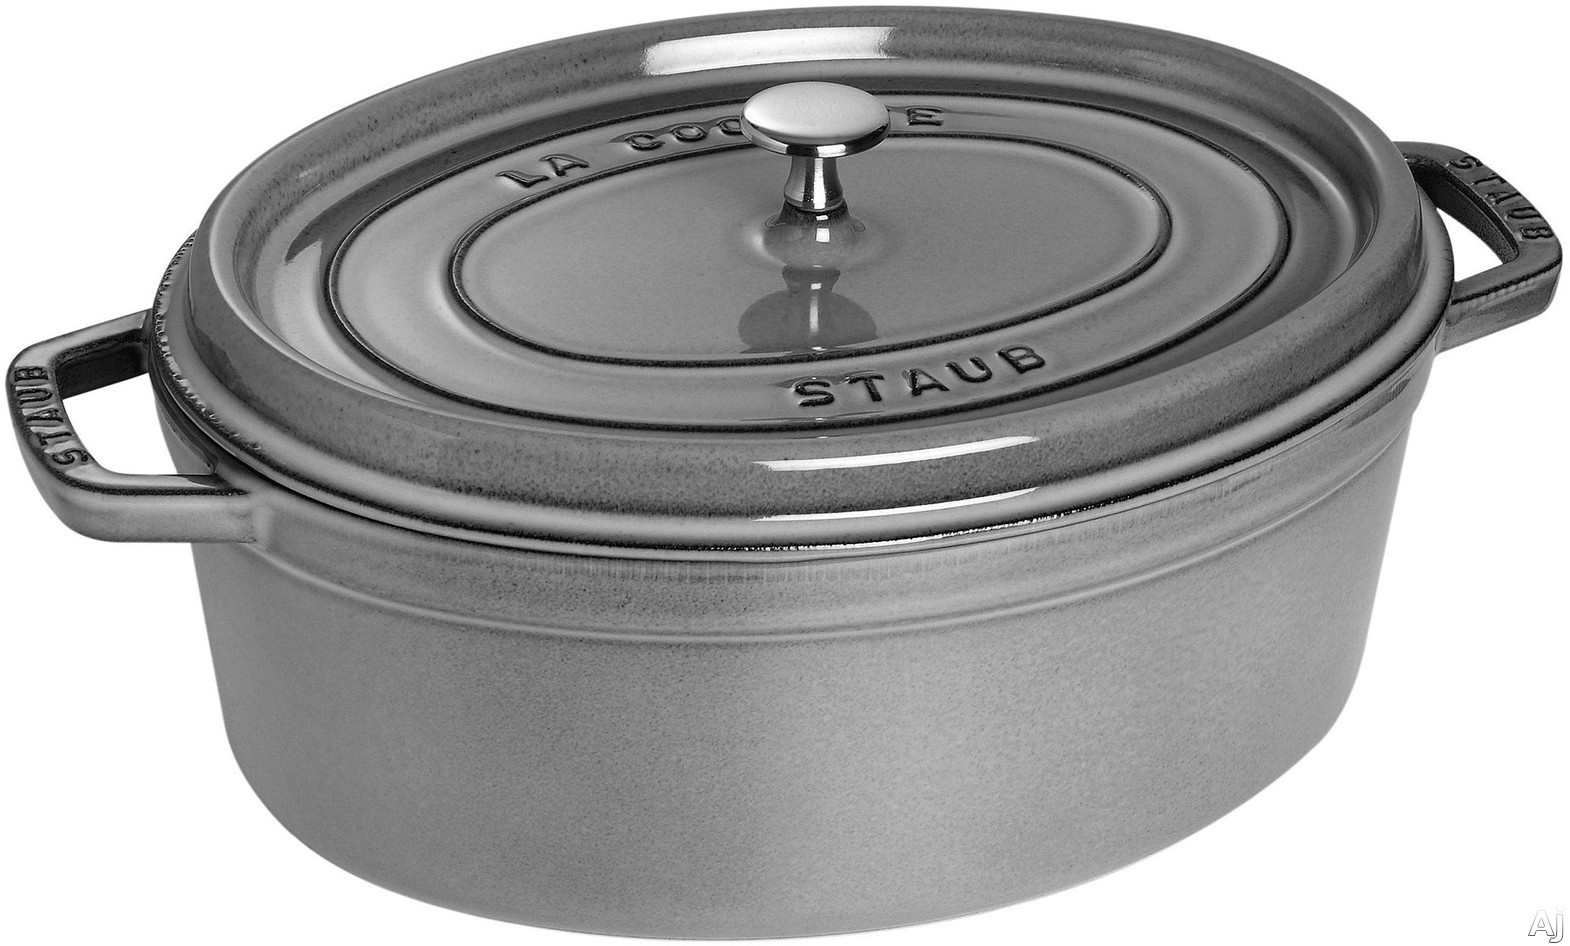 Staub 1103318 7 Quart Cast Iron Oval Cocotte with Heavyweight Lid, Induction Suitable, Oven Safe, Made in France, Dishwasher Safe and Nickel Steel Knob: Grey